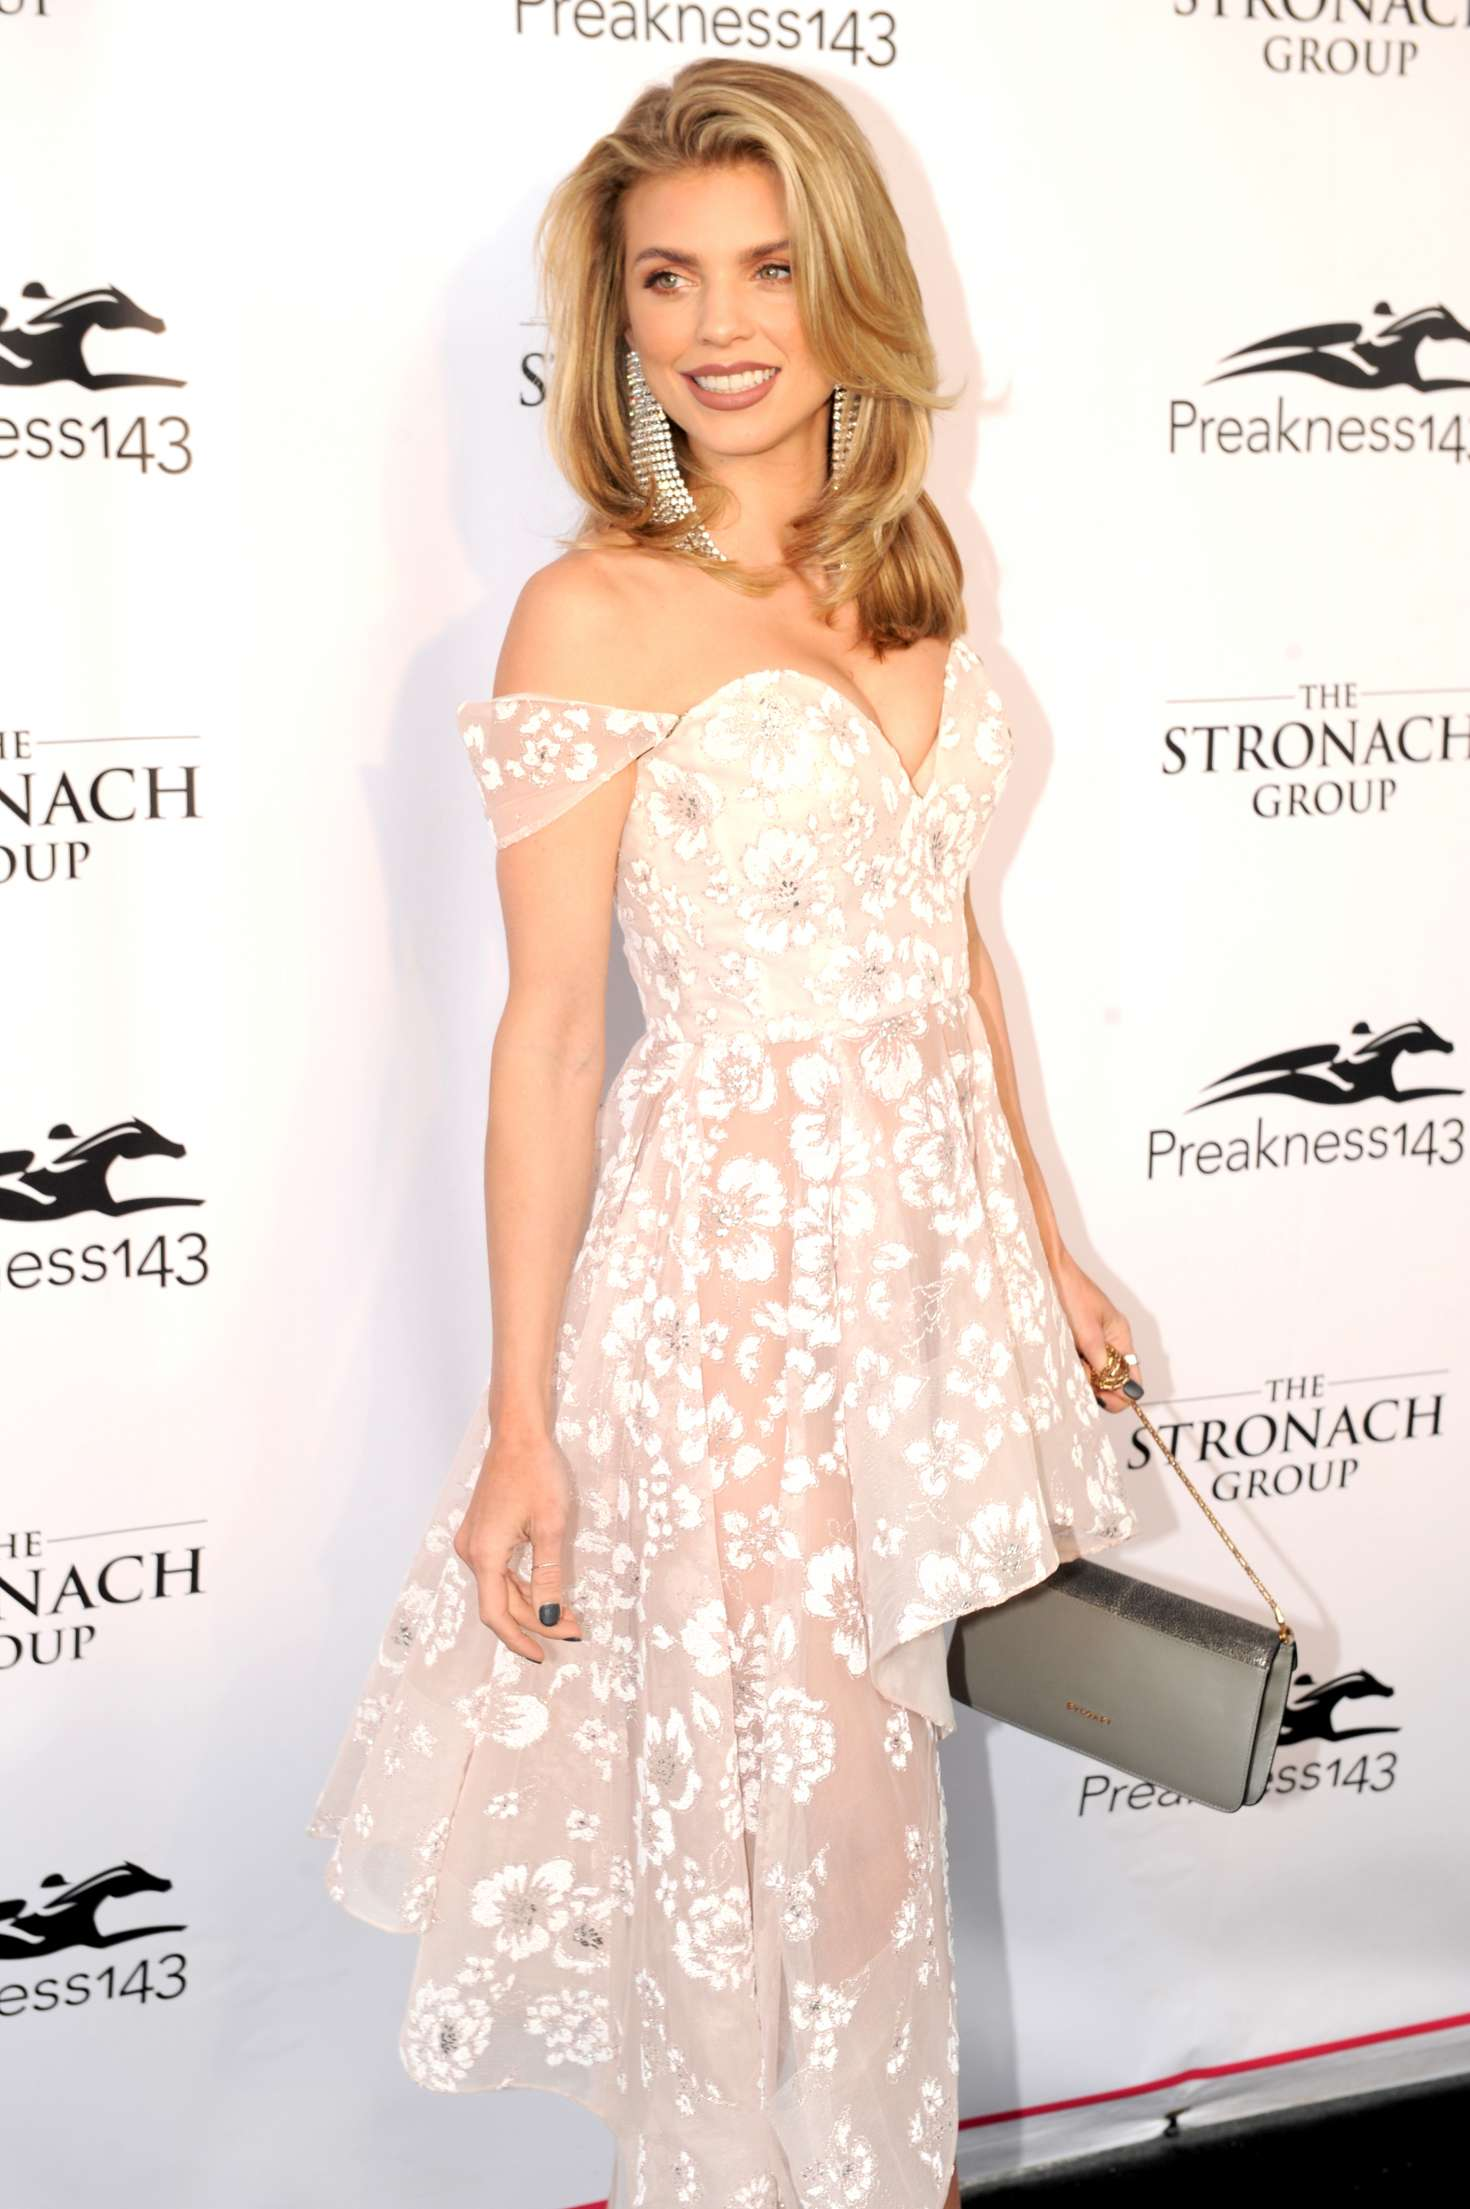 AnnaLynne McCord -143rd Preakness Stakes in Baltimore